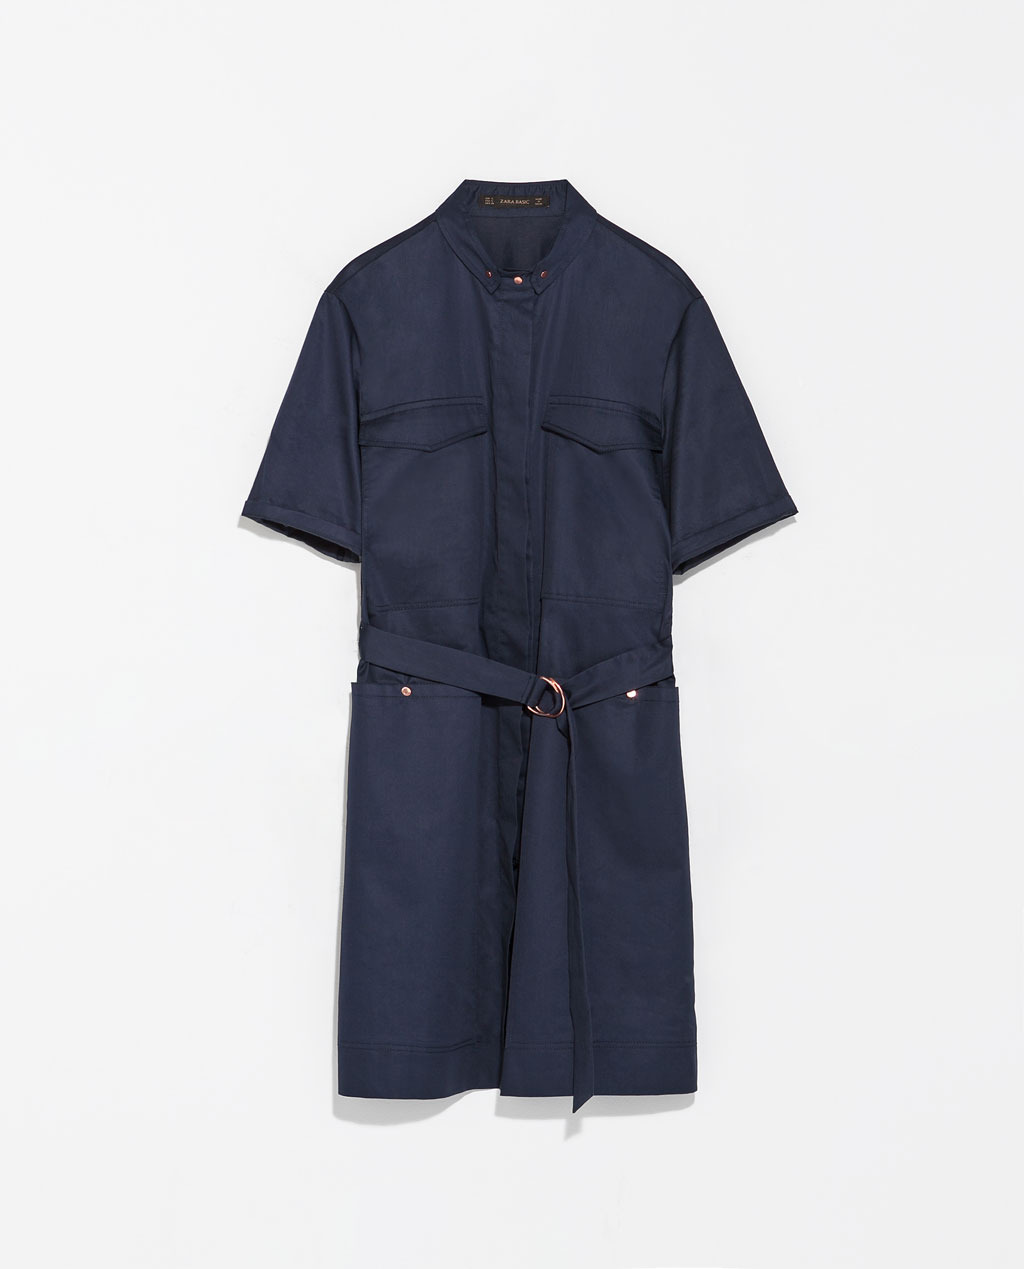 Dress With Belt - style: shirt; length: mid thigh; pattern: plain; waist detail: belted waist/tie at waist/drawstring; predominant colour: navy; occasions: casual, holiday, creative work; fit: body skimming; neckline: collarstand; fibres: cotton - 100%; sleeve length: short sleeve; sleeve style: standard; texture group: cotton feel fabrics; pattern type: fabric; embellishment: studs; season: s/s 2014